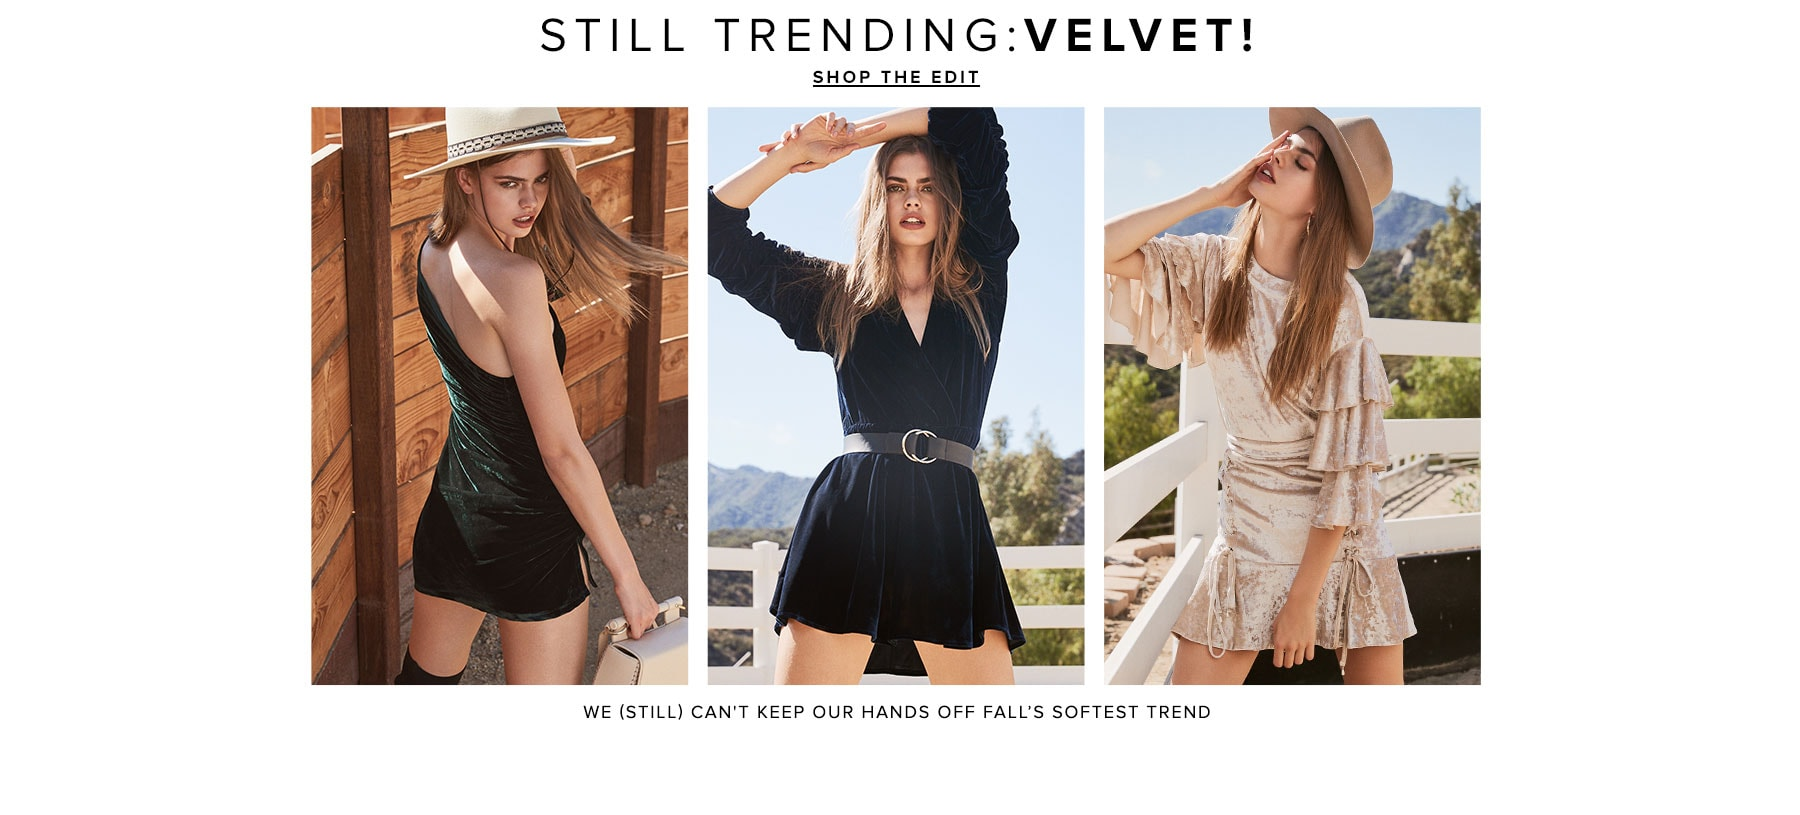 Still Trending: Velvet! We (still) can't keep our hands off fall's softest trend. Shop the Edit.